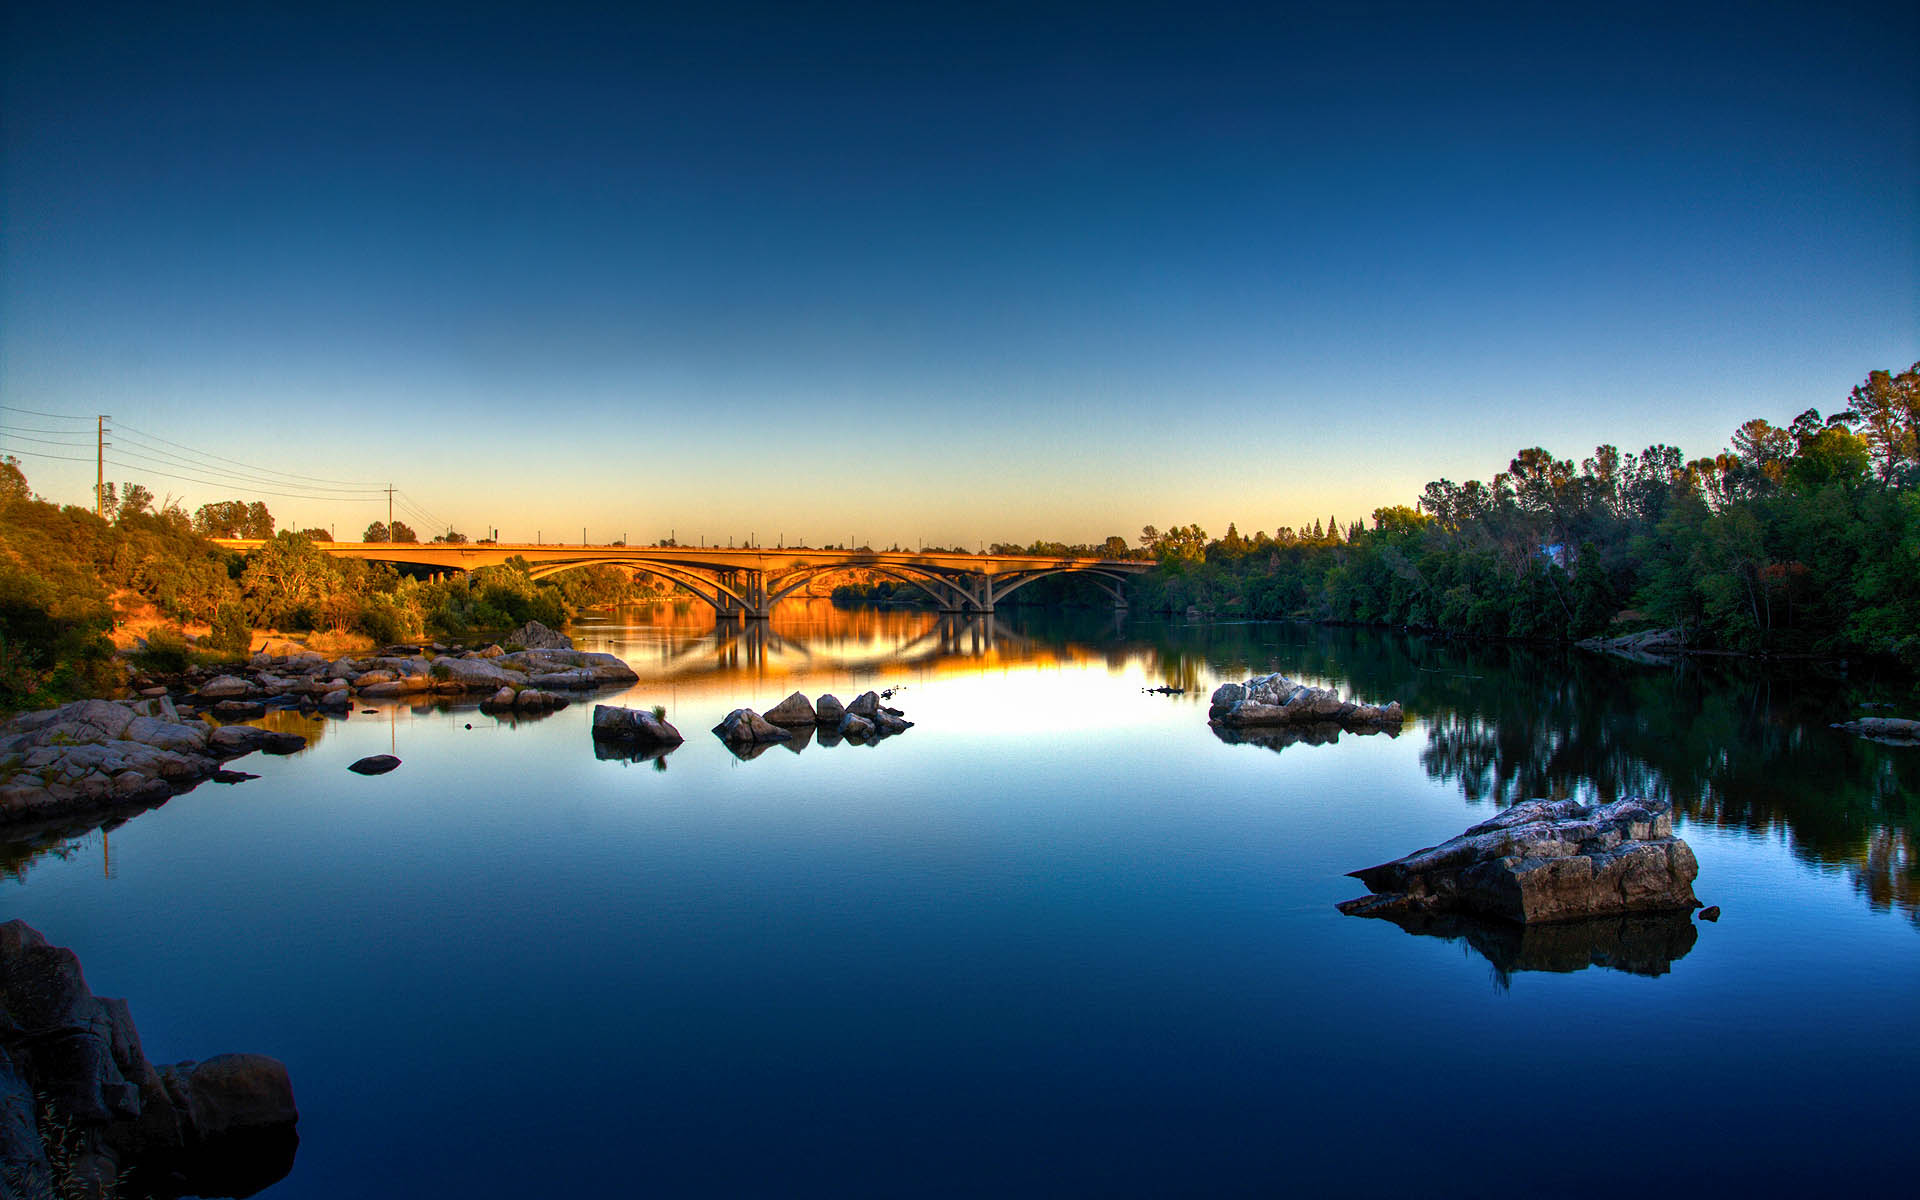 River HD Wallpapers And Desktop Backgrounds